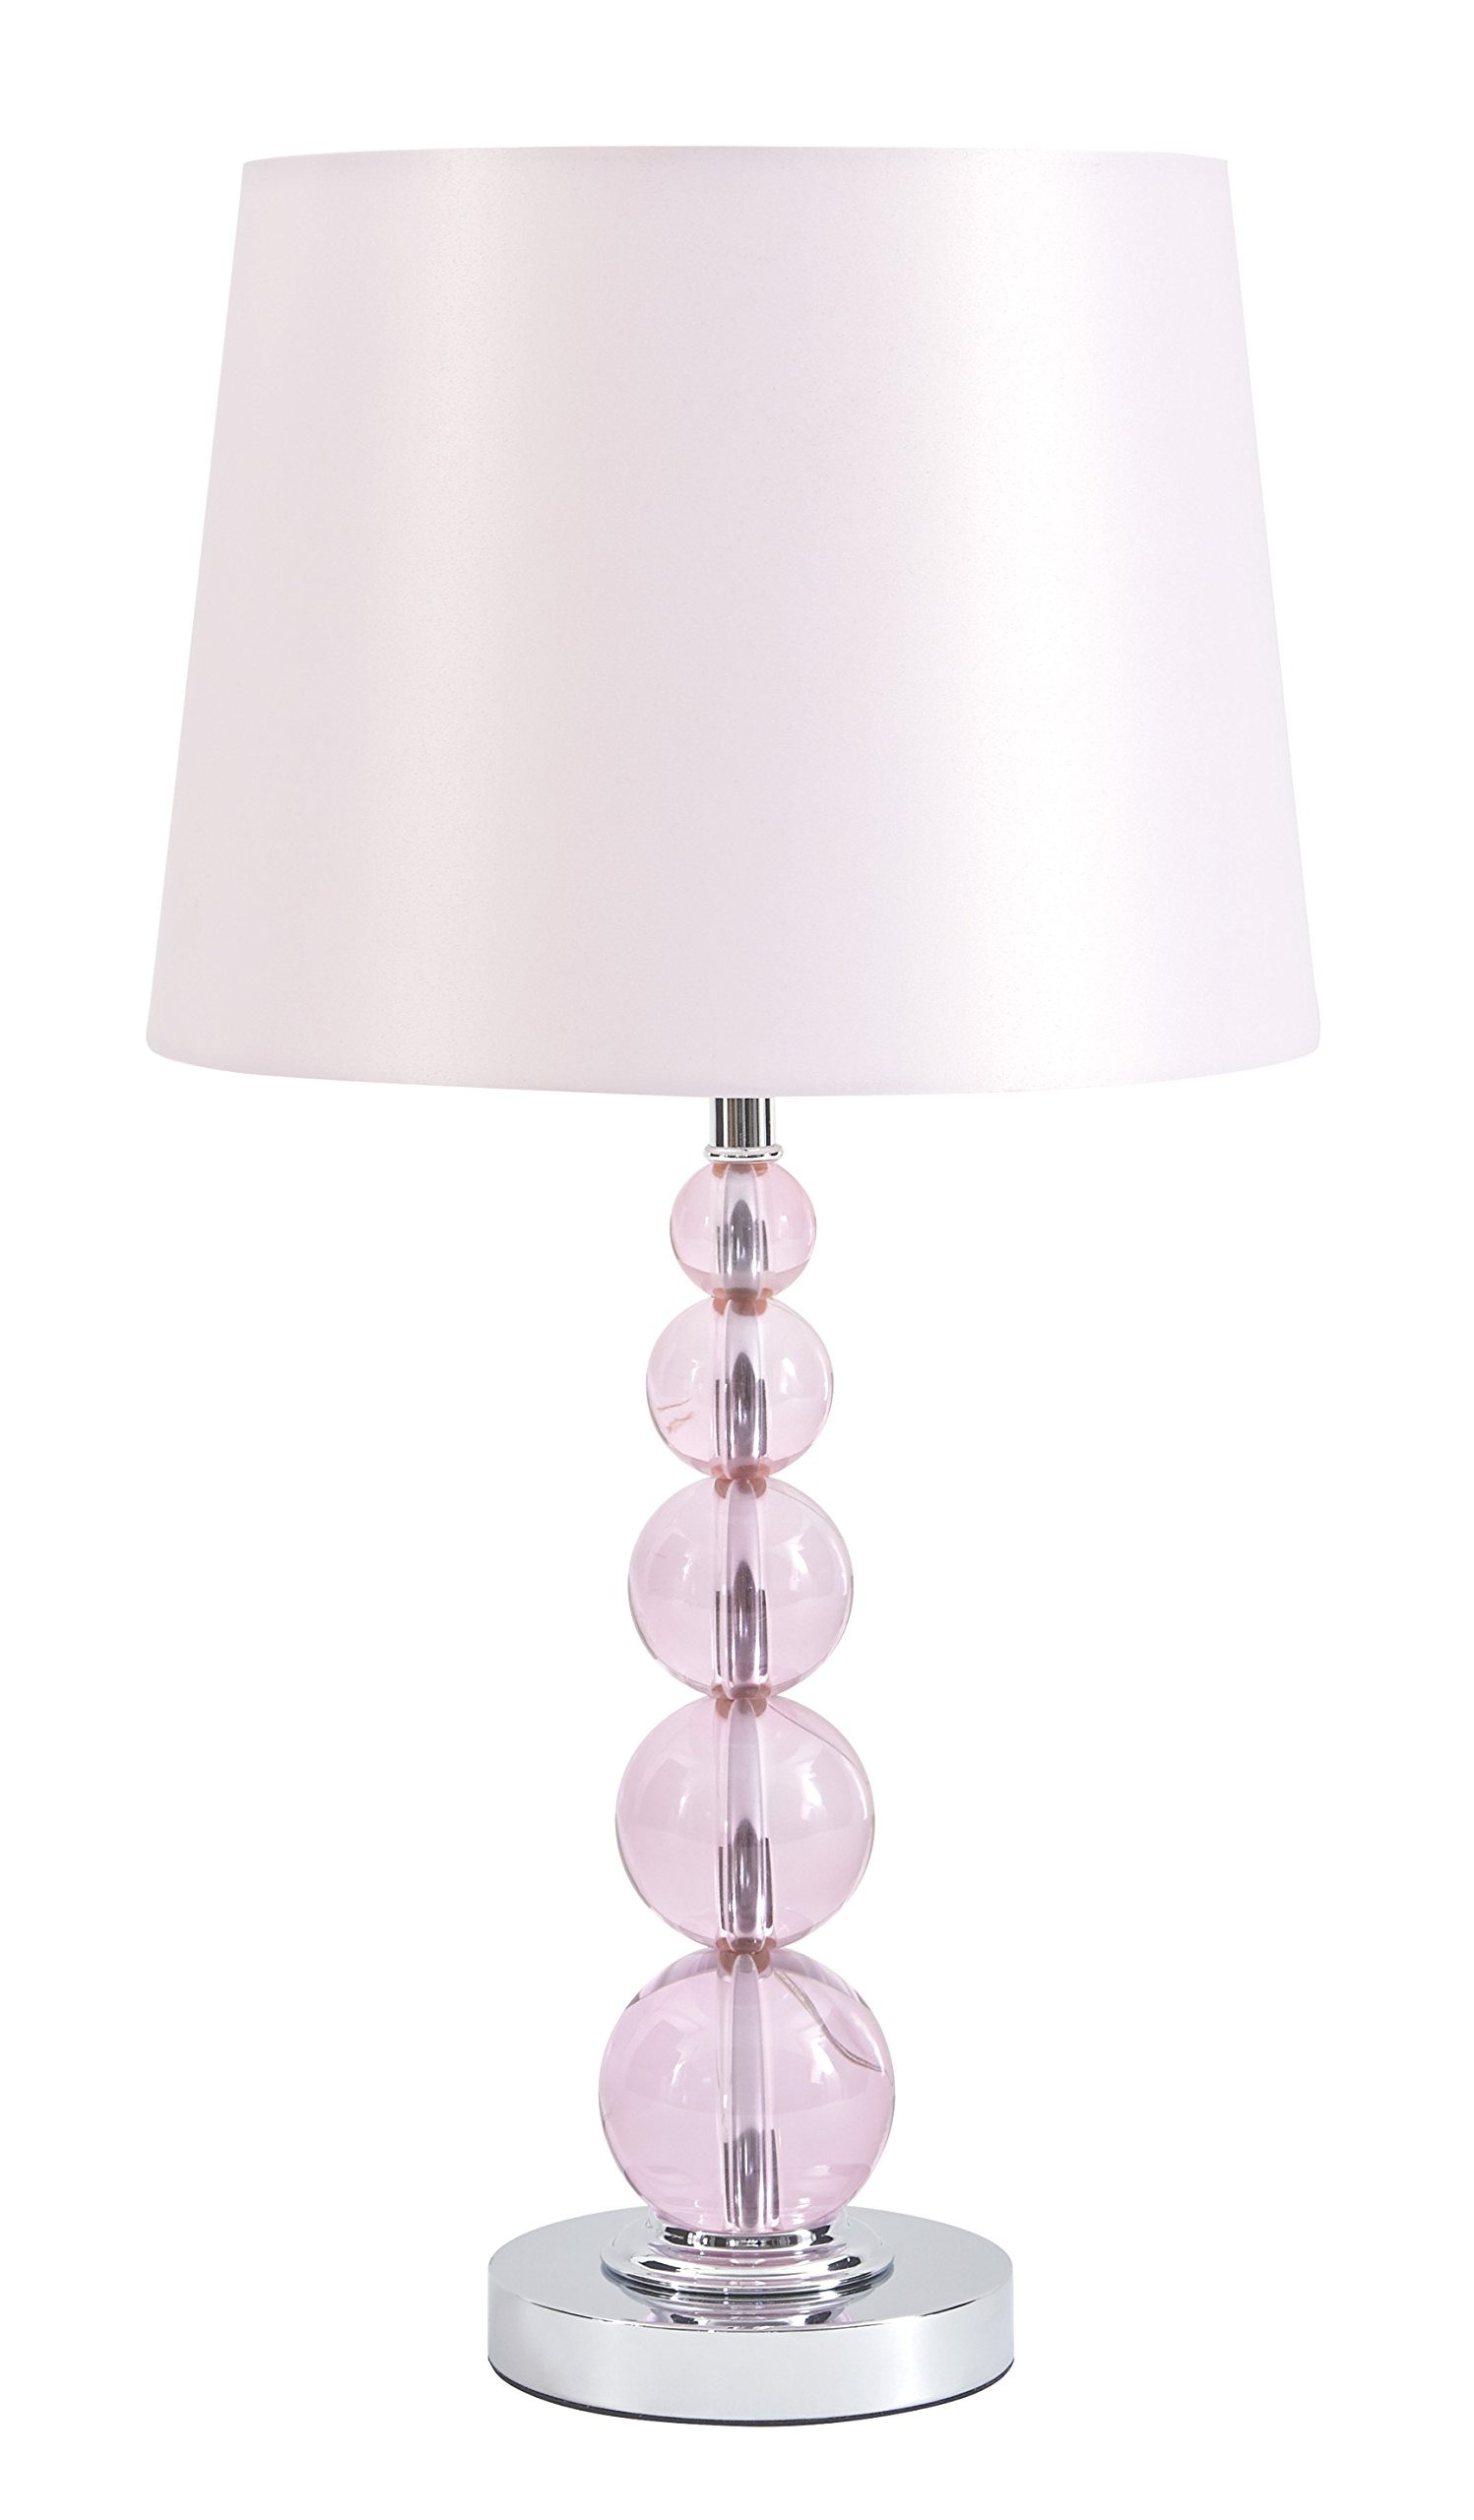 Ashley Furniture Signature Design - Letty Table Lamp - Children's Lamp - Hot Pink by Signature Design by Ashley (Image #1)